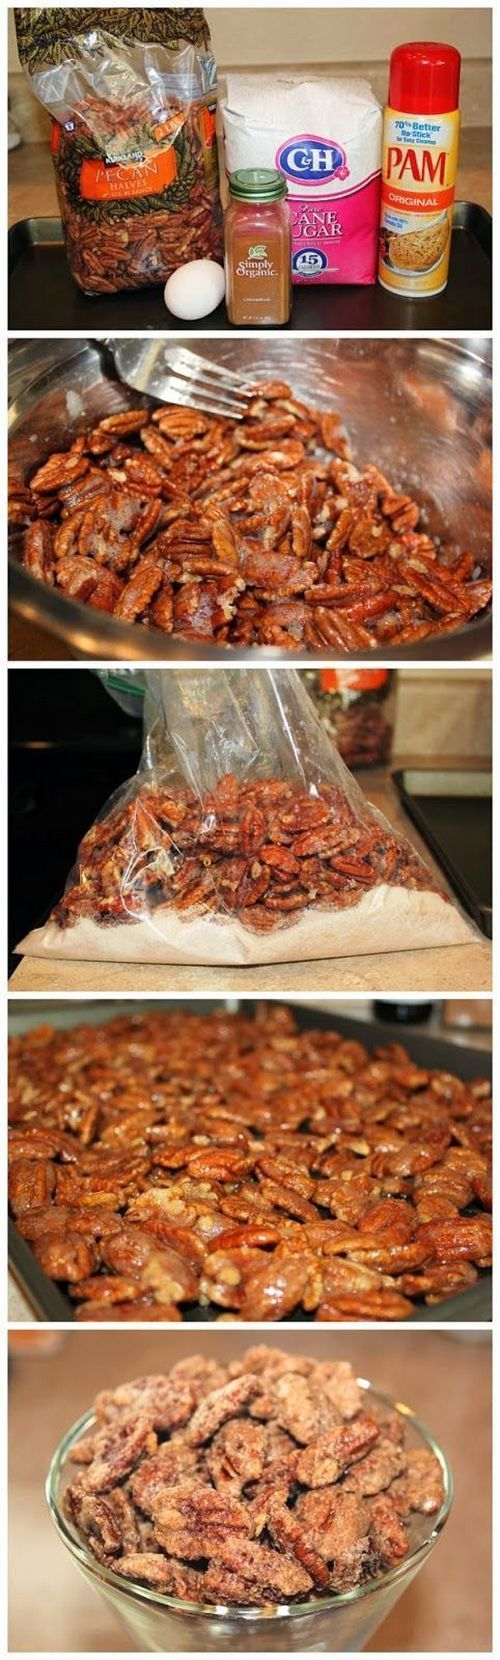 An incredibly easy recipe for candied pecans, perfect for holiday snacking or gift-giving!